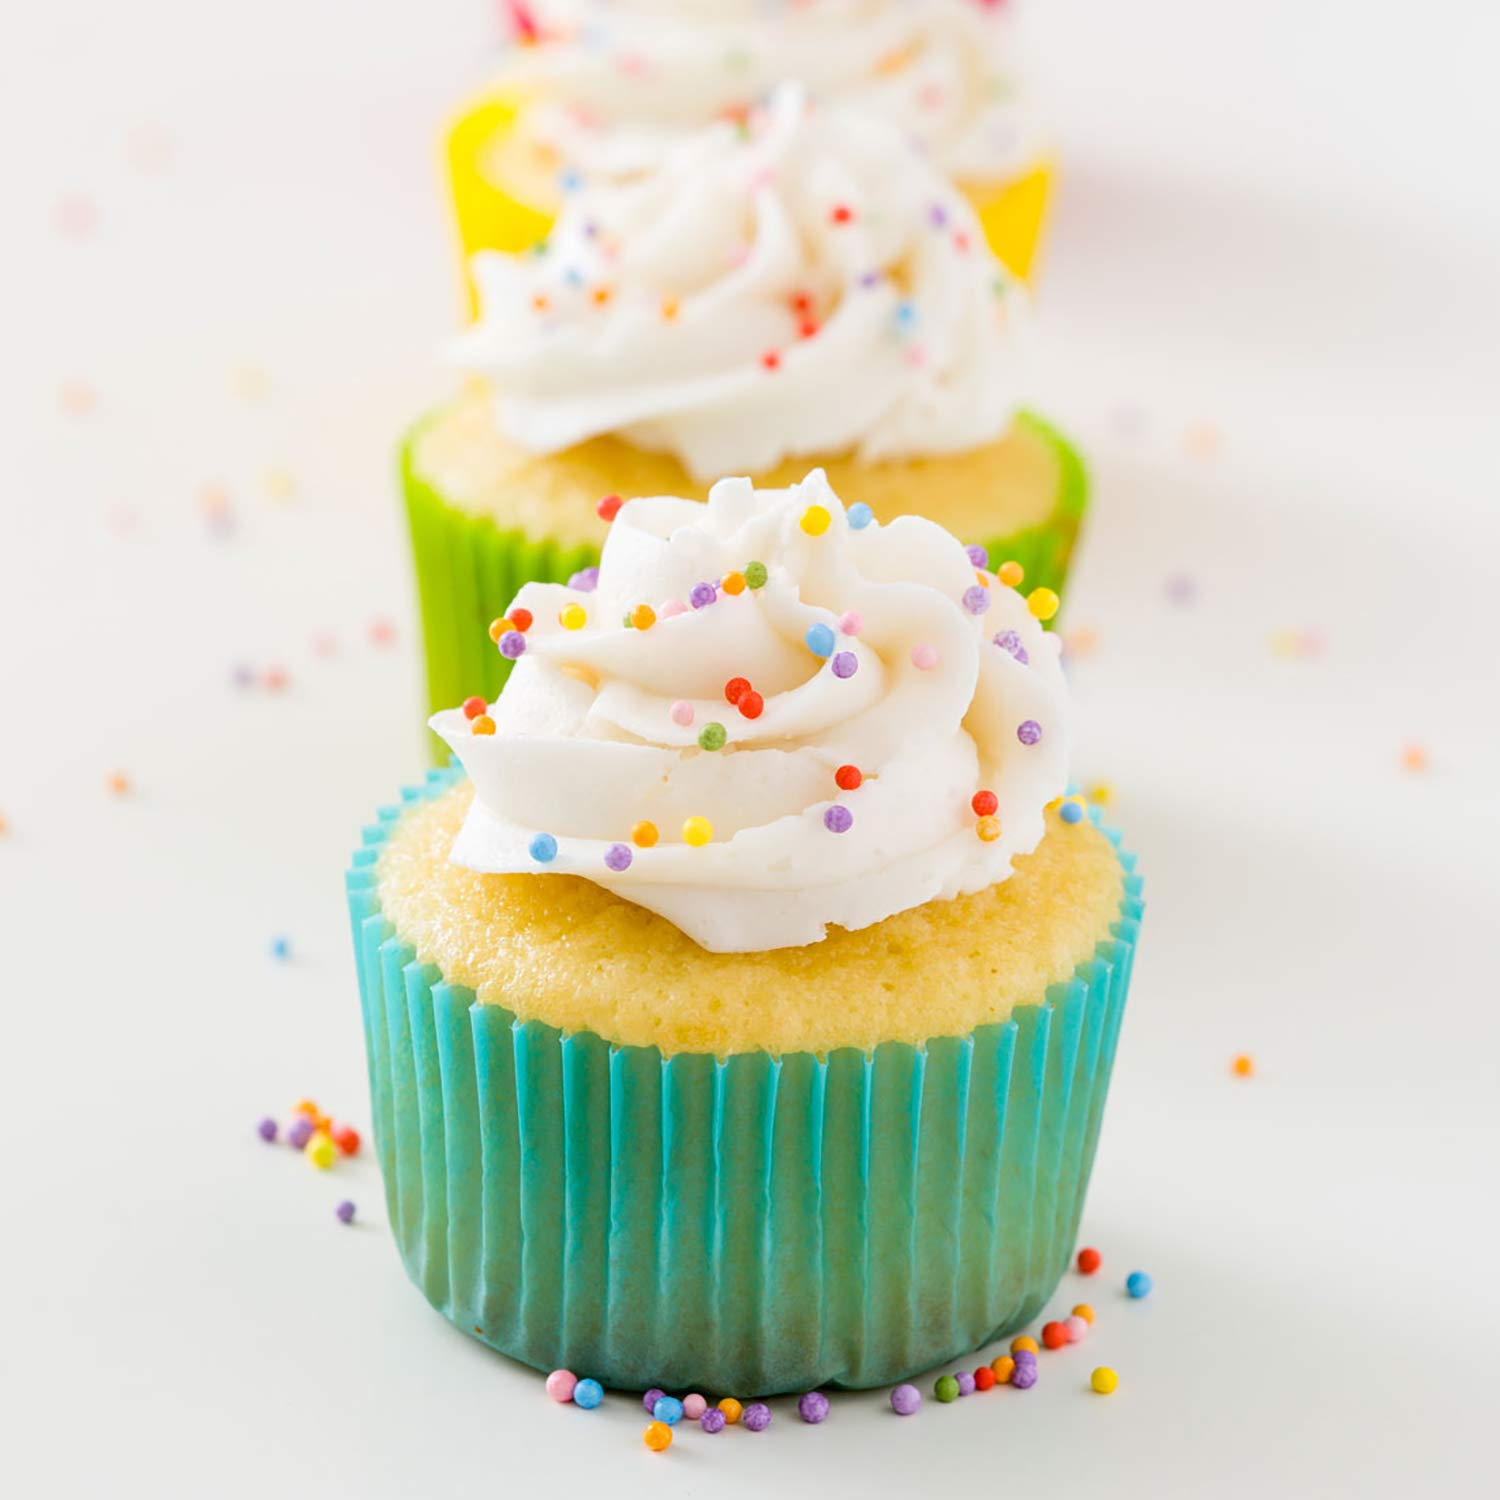 Miss Jones Baking 90% Organic Birthday Buttercream Frosting, Perfect for Icing and Decorating, Vegan-Friendly: Confetti Pop (Pack of 6) by Miss Jones Baking (Image #10)